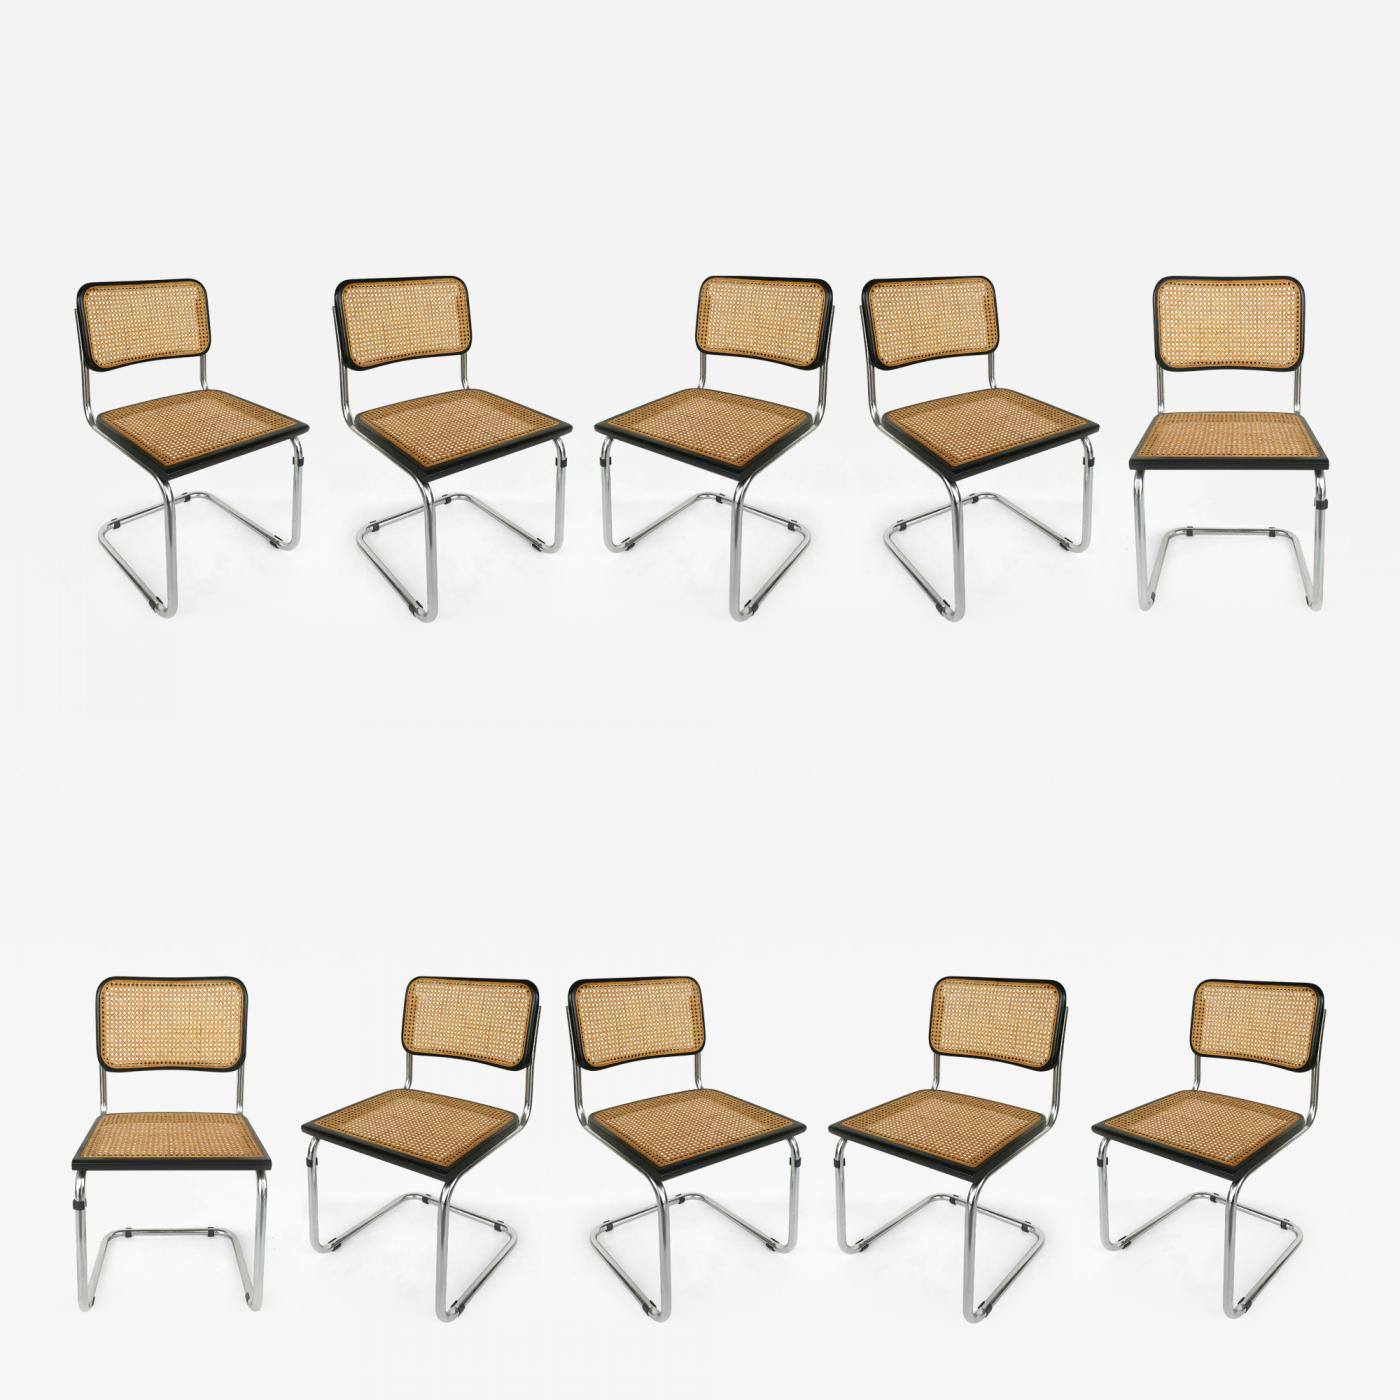 Groovy Marcel Breuer Marcel Breuer Knoll Cesca Set 10 Cane Dining Chairs Italy Pdpeps Interior Chair Design Pdpepsorg